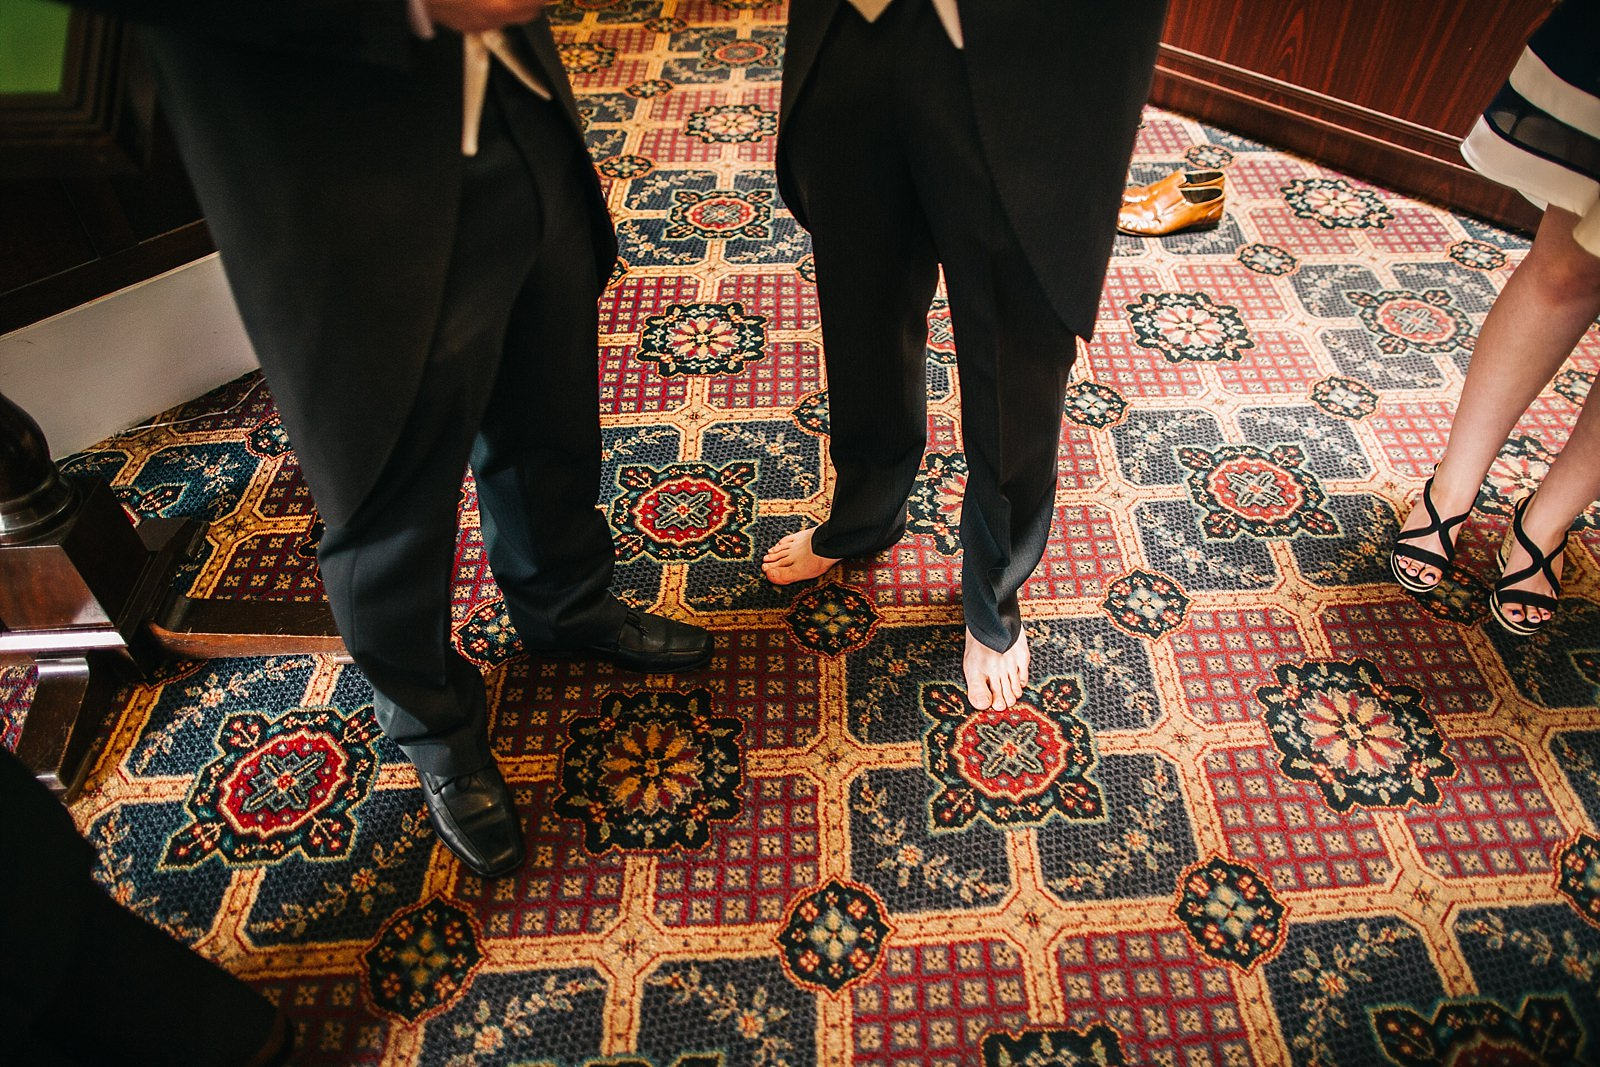 groomsmen without shoes standing on a red carpet